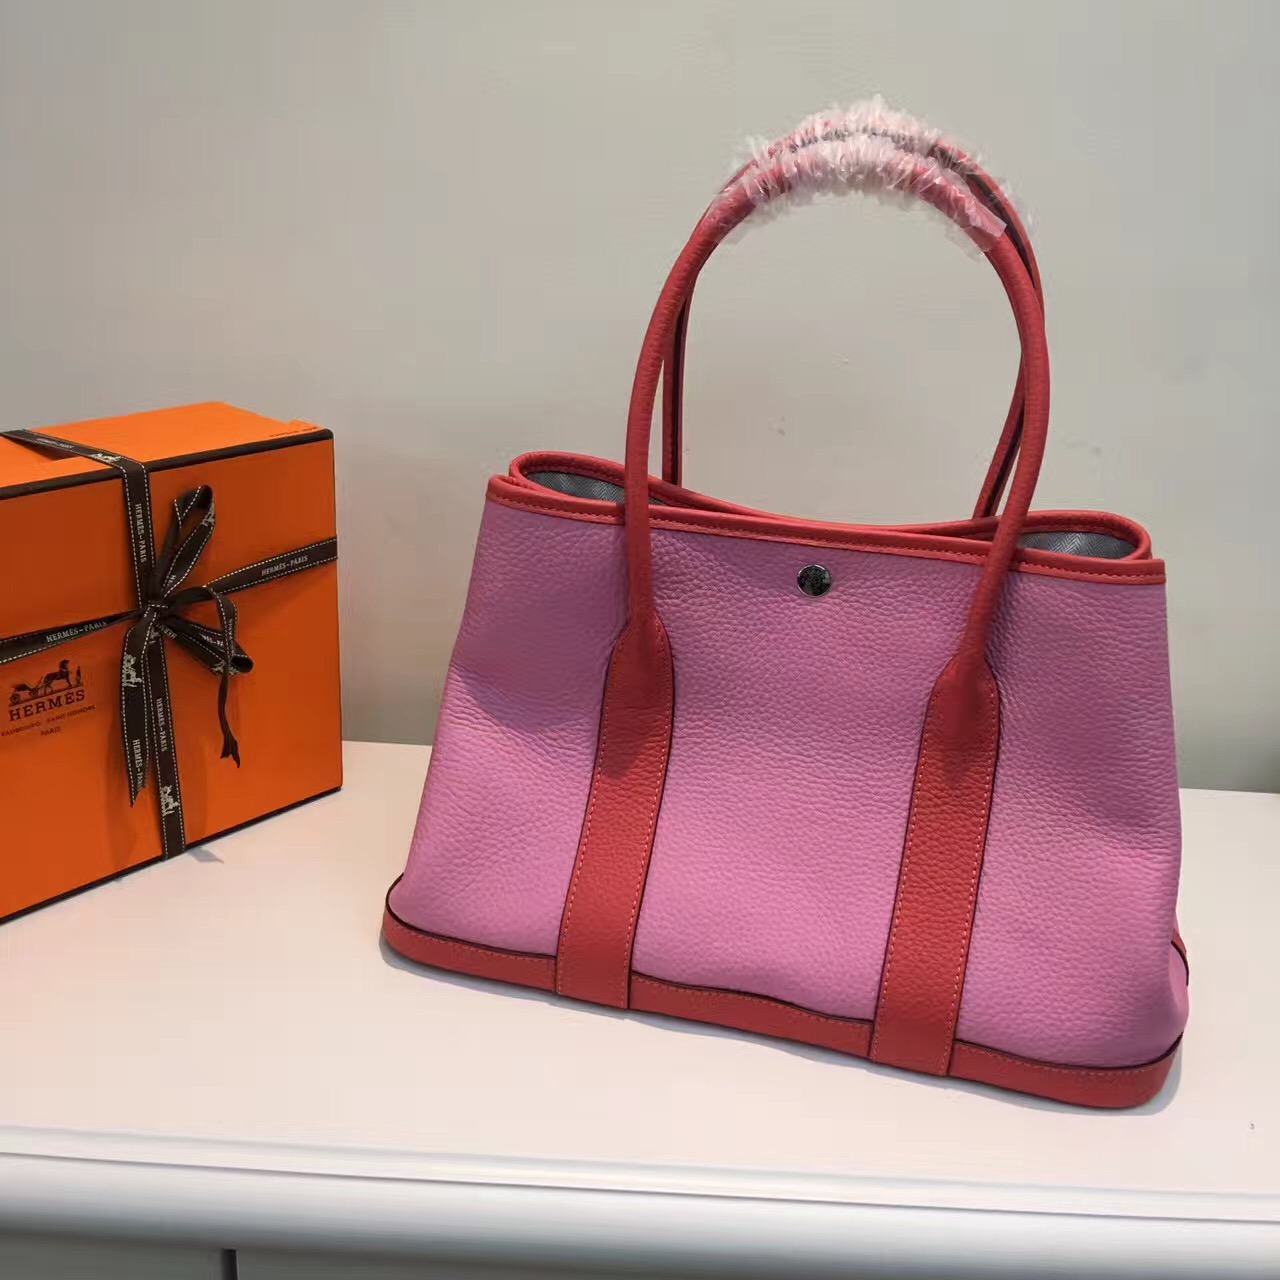 Hermes Garden Party 36cm Leather Handbag Pink Watermelon Red